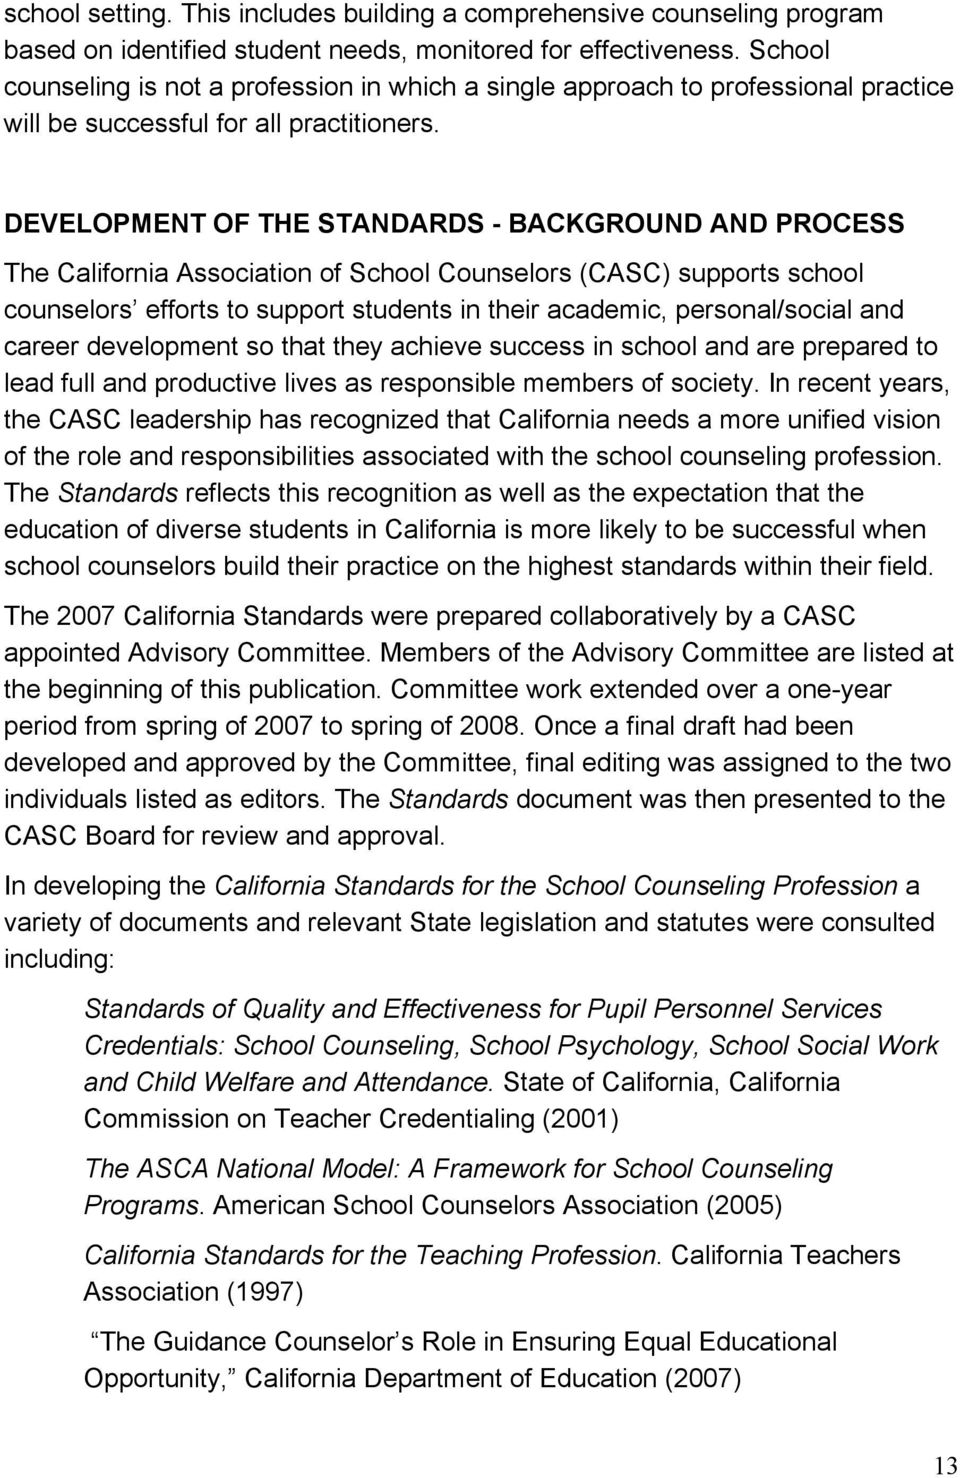 DEVELOPMENT OF THE STANDARDS - BACKGROUND AND PROCESS The California Association of School Counselors (CASC) supports school counselors efforts to support students in their academic, personal/social